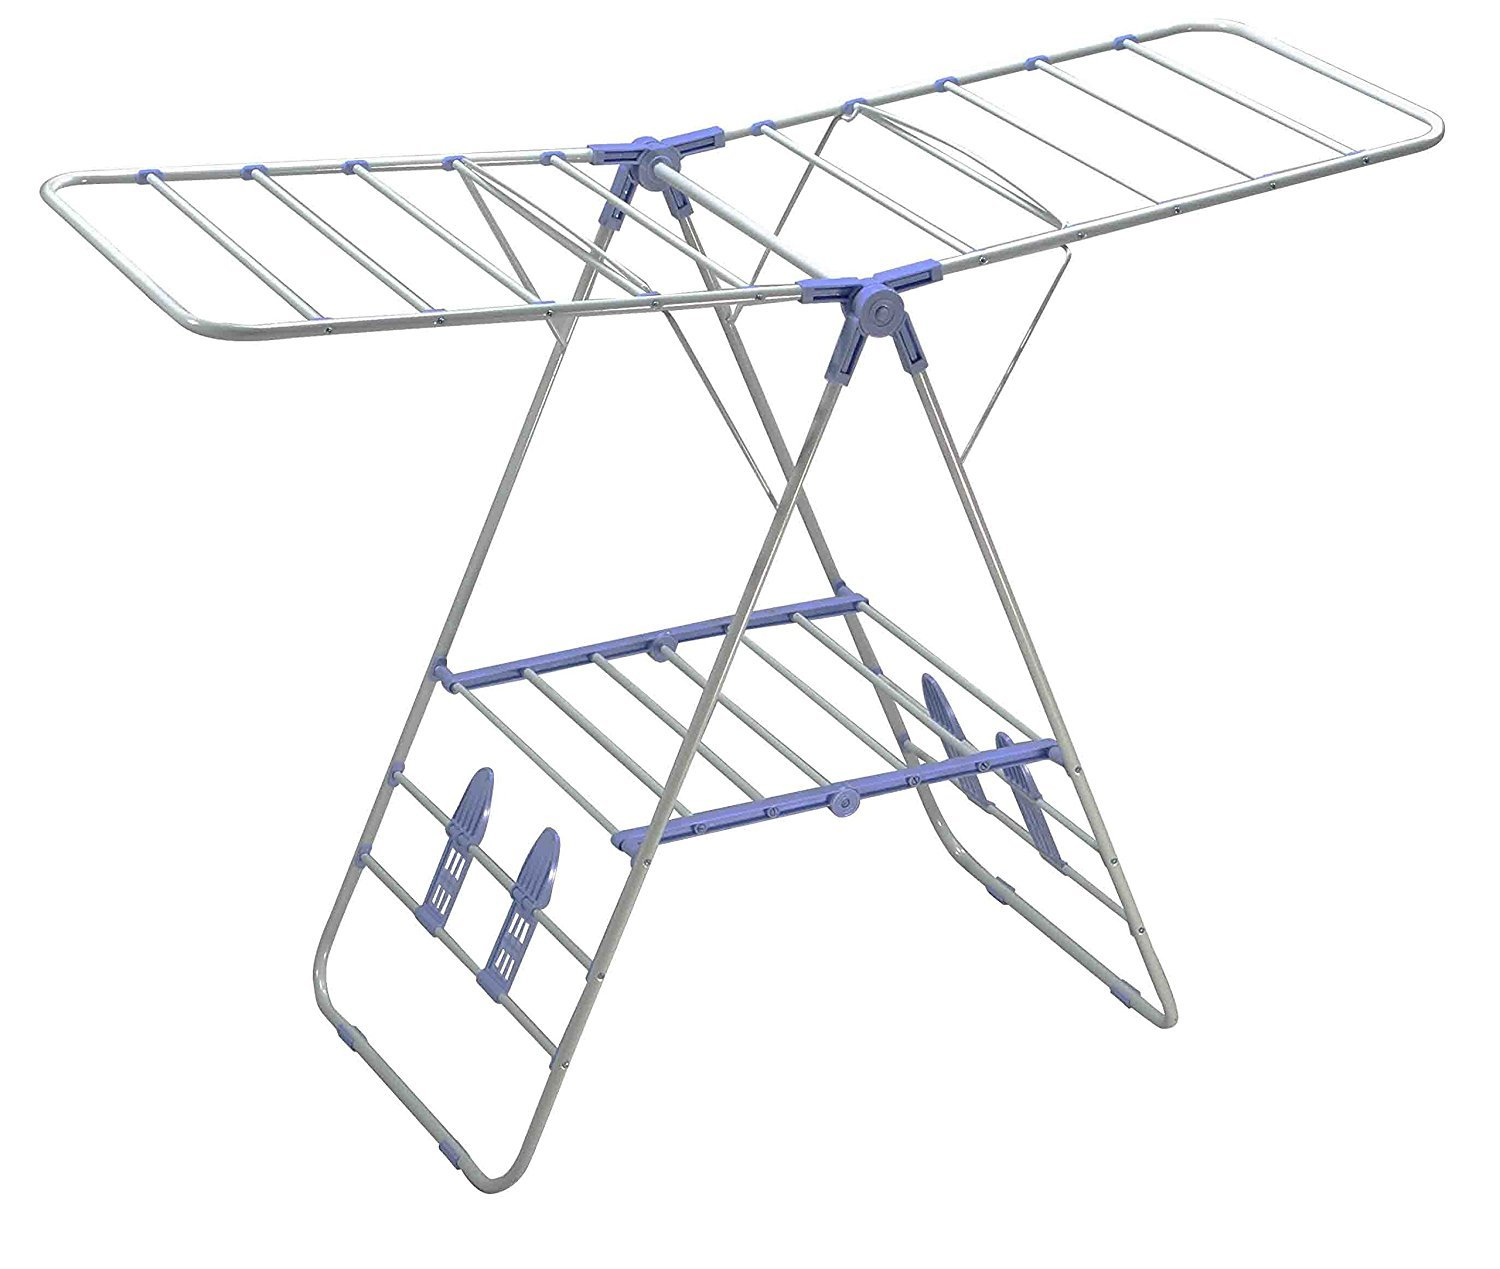 Sunbeam Folding Collapsible Clothes Drying Rack